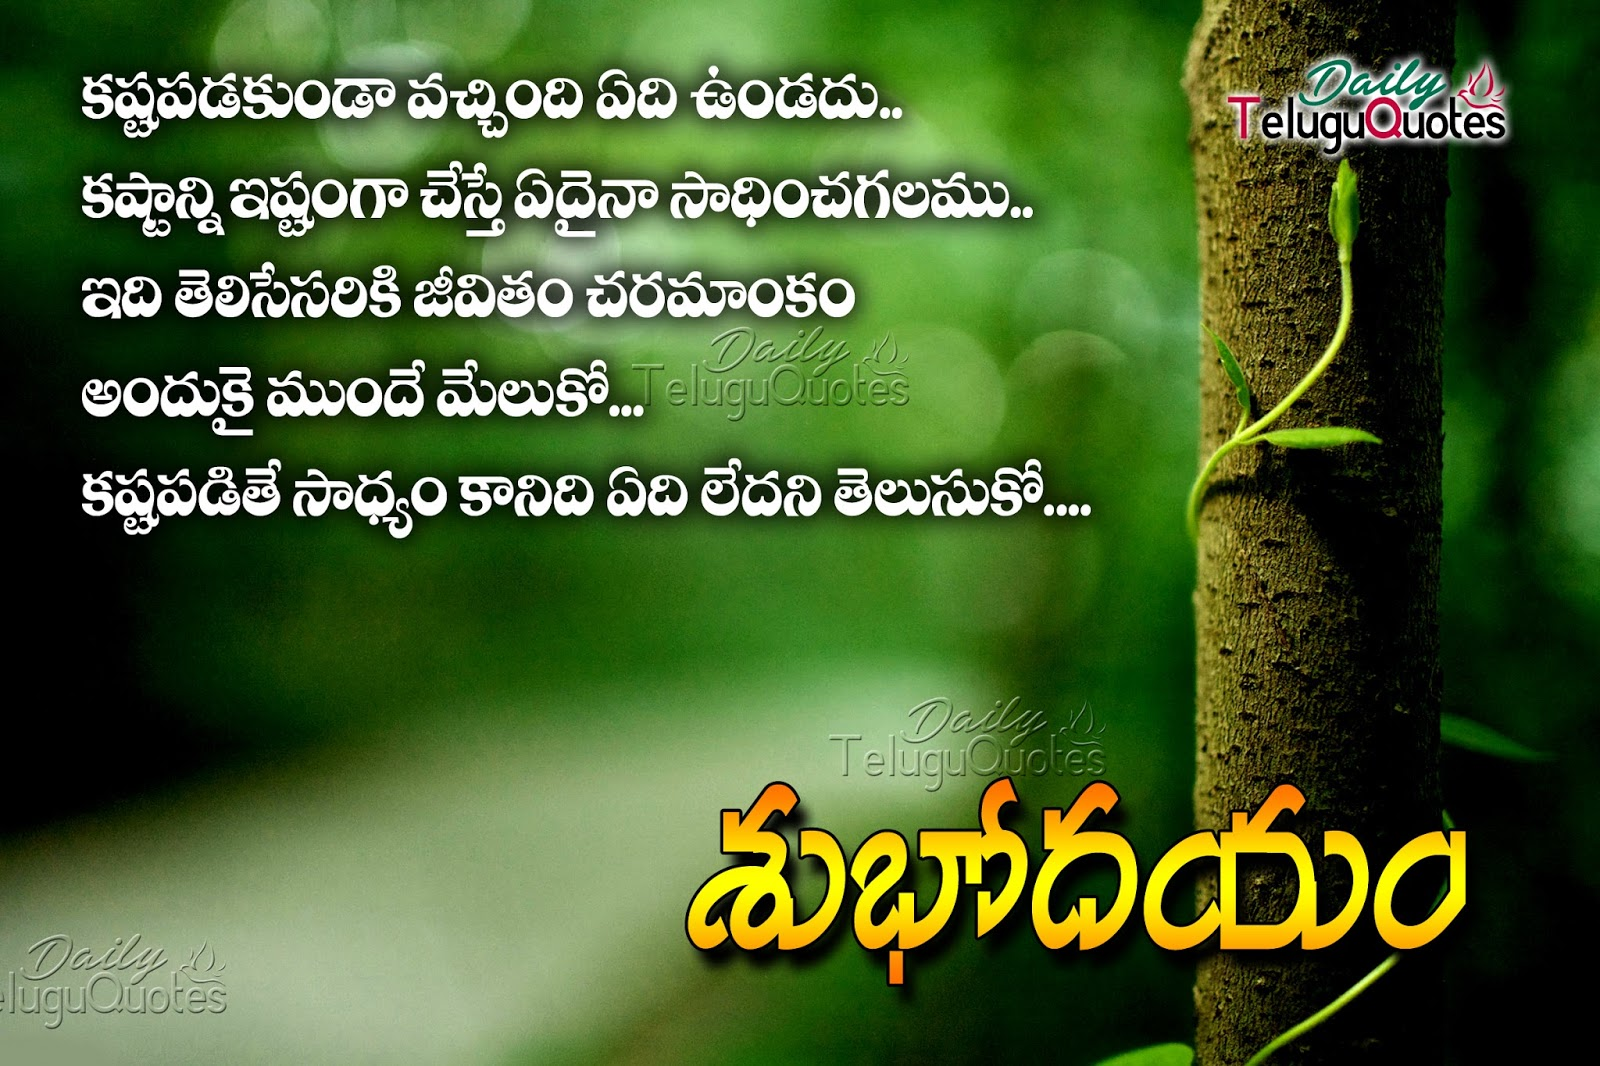 Nice good morning telugu quotes and sayings about life good morning telugu quotes greetings wishes ecards sms m4hsunfo